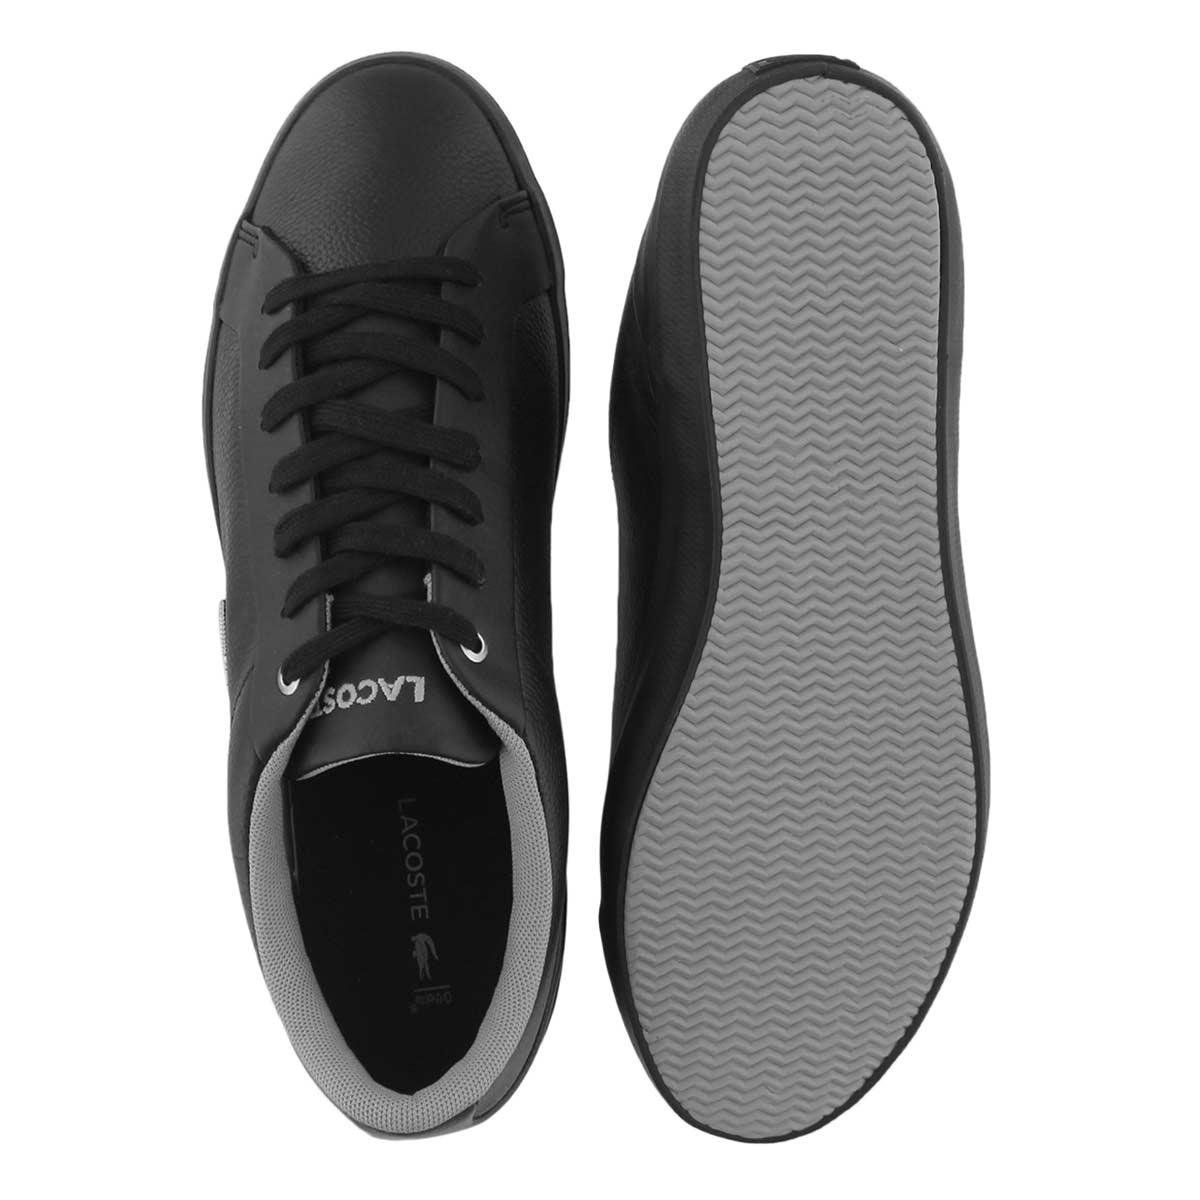 Mns Lerond 118 blk/gry lace up sneaker